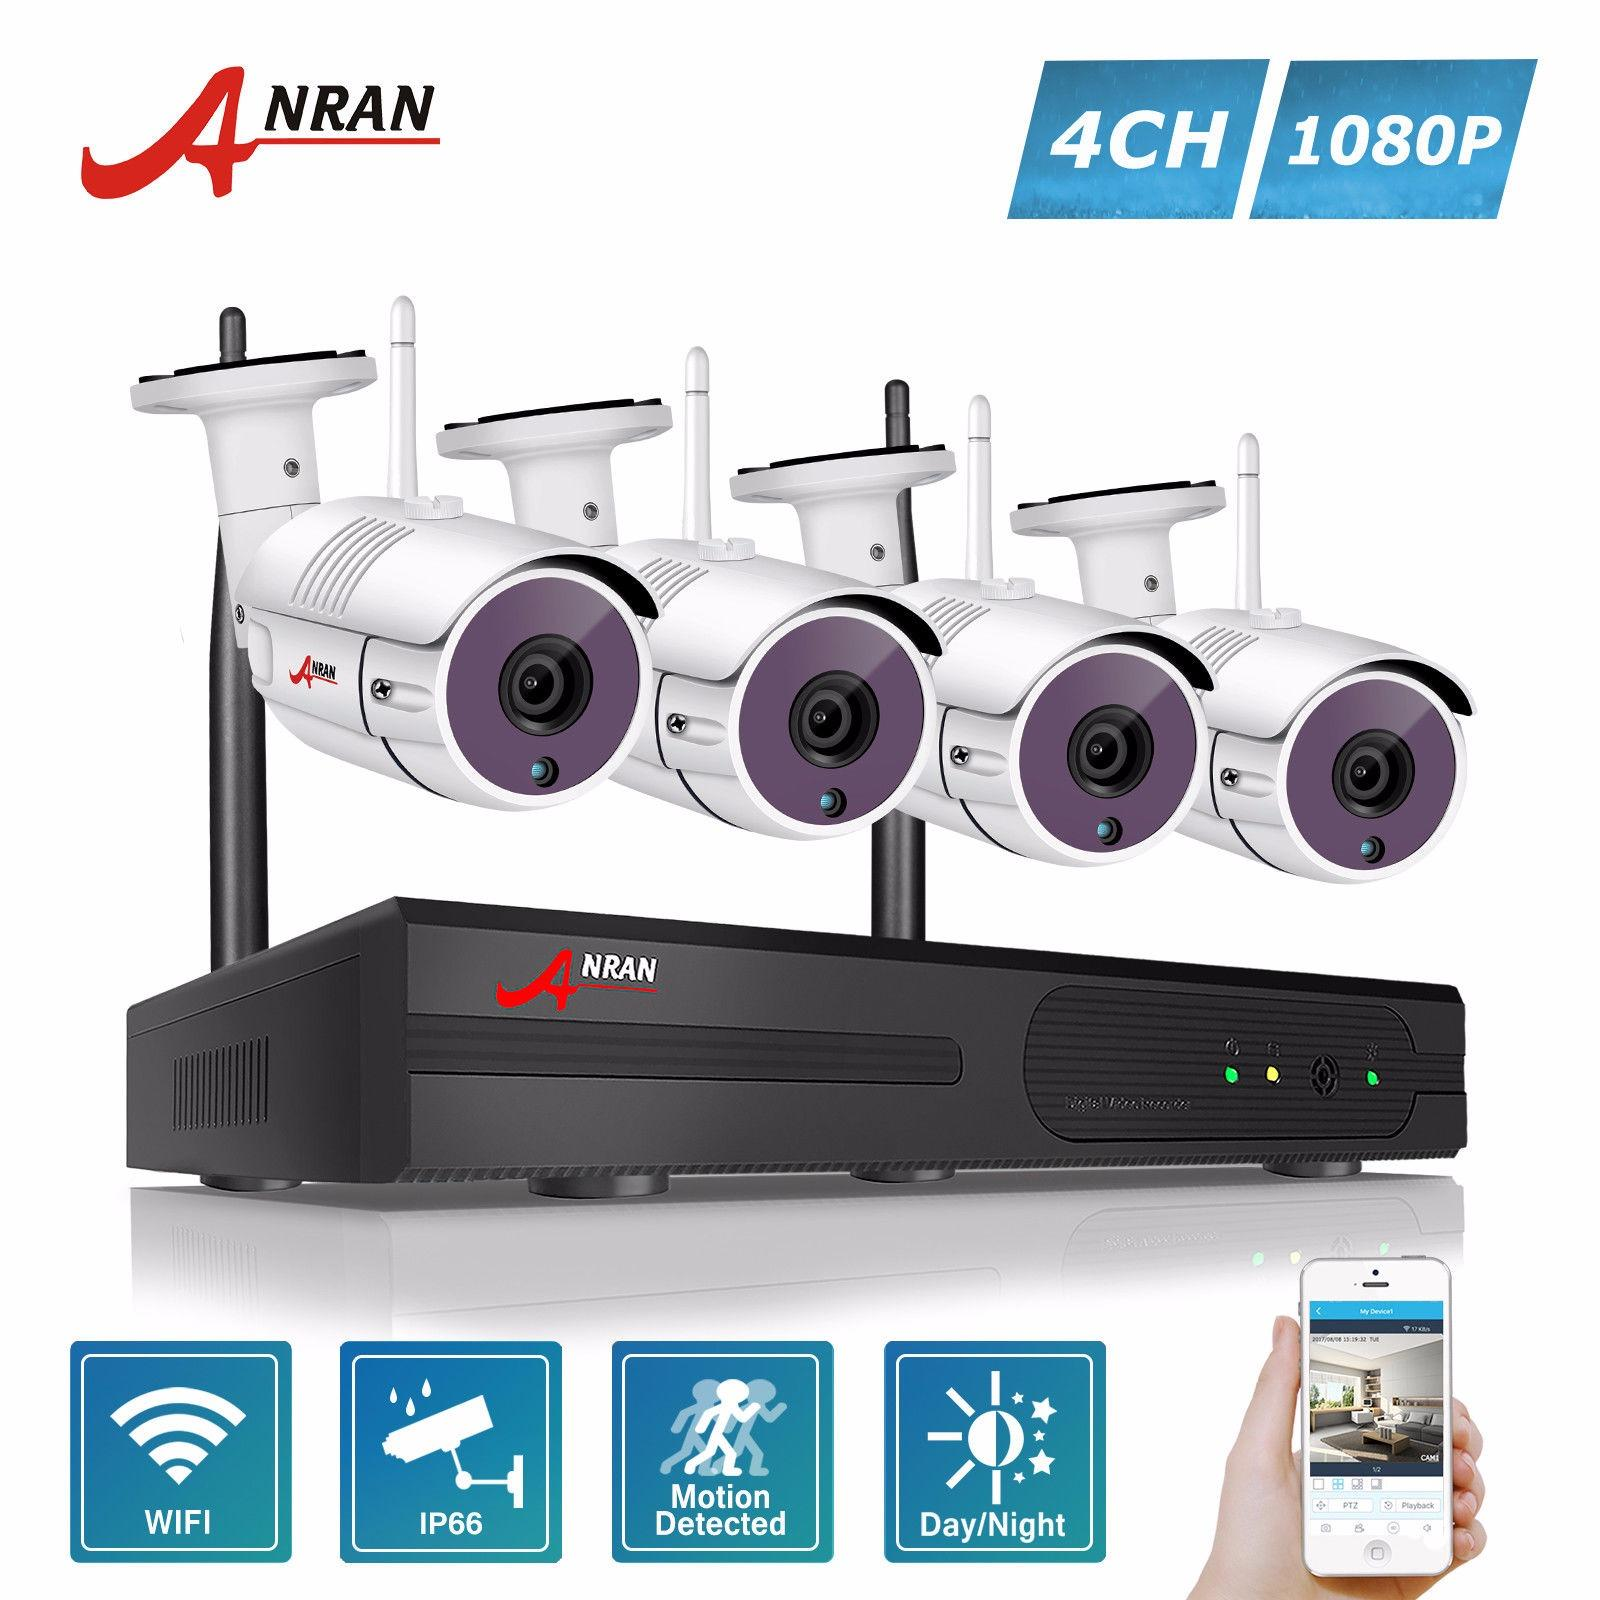 Lowest Price Anran 4Ch Wireless Nvr Security Cctv System P2P 1080P Hd Outdoor Vandalproof Wfi Ip Camera